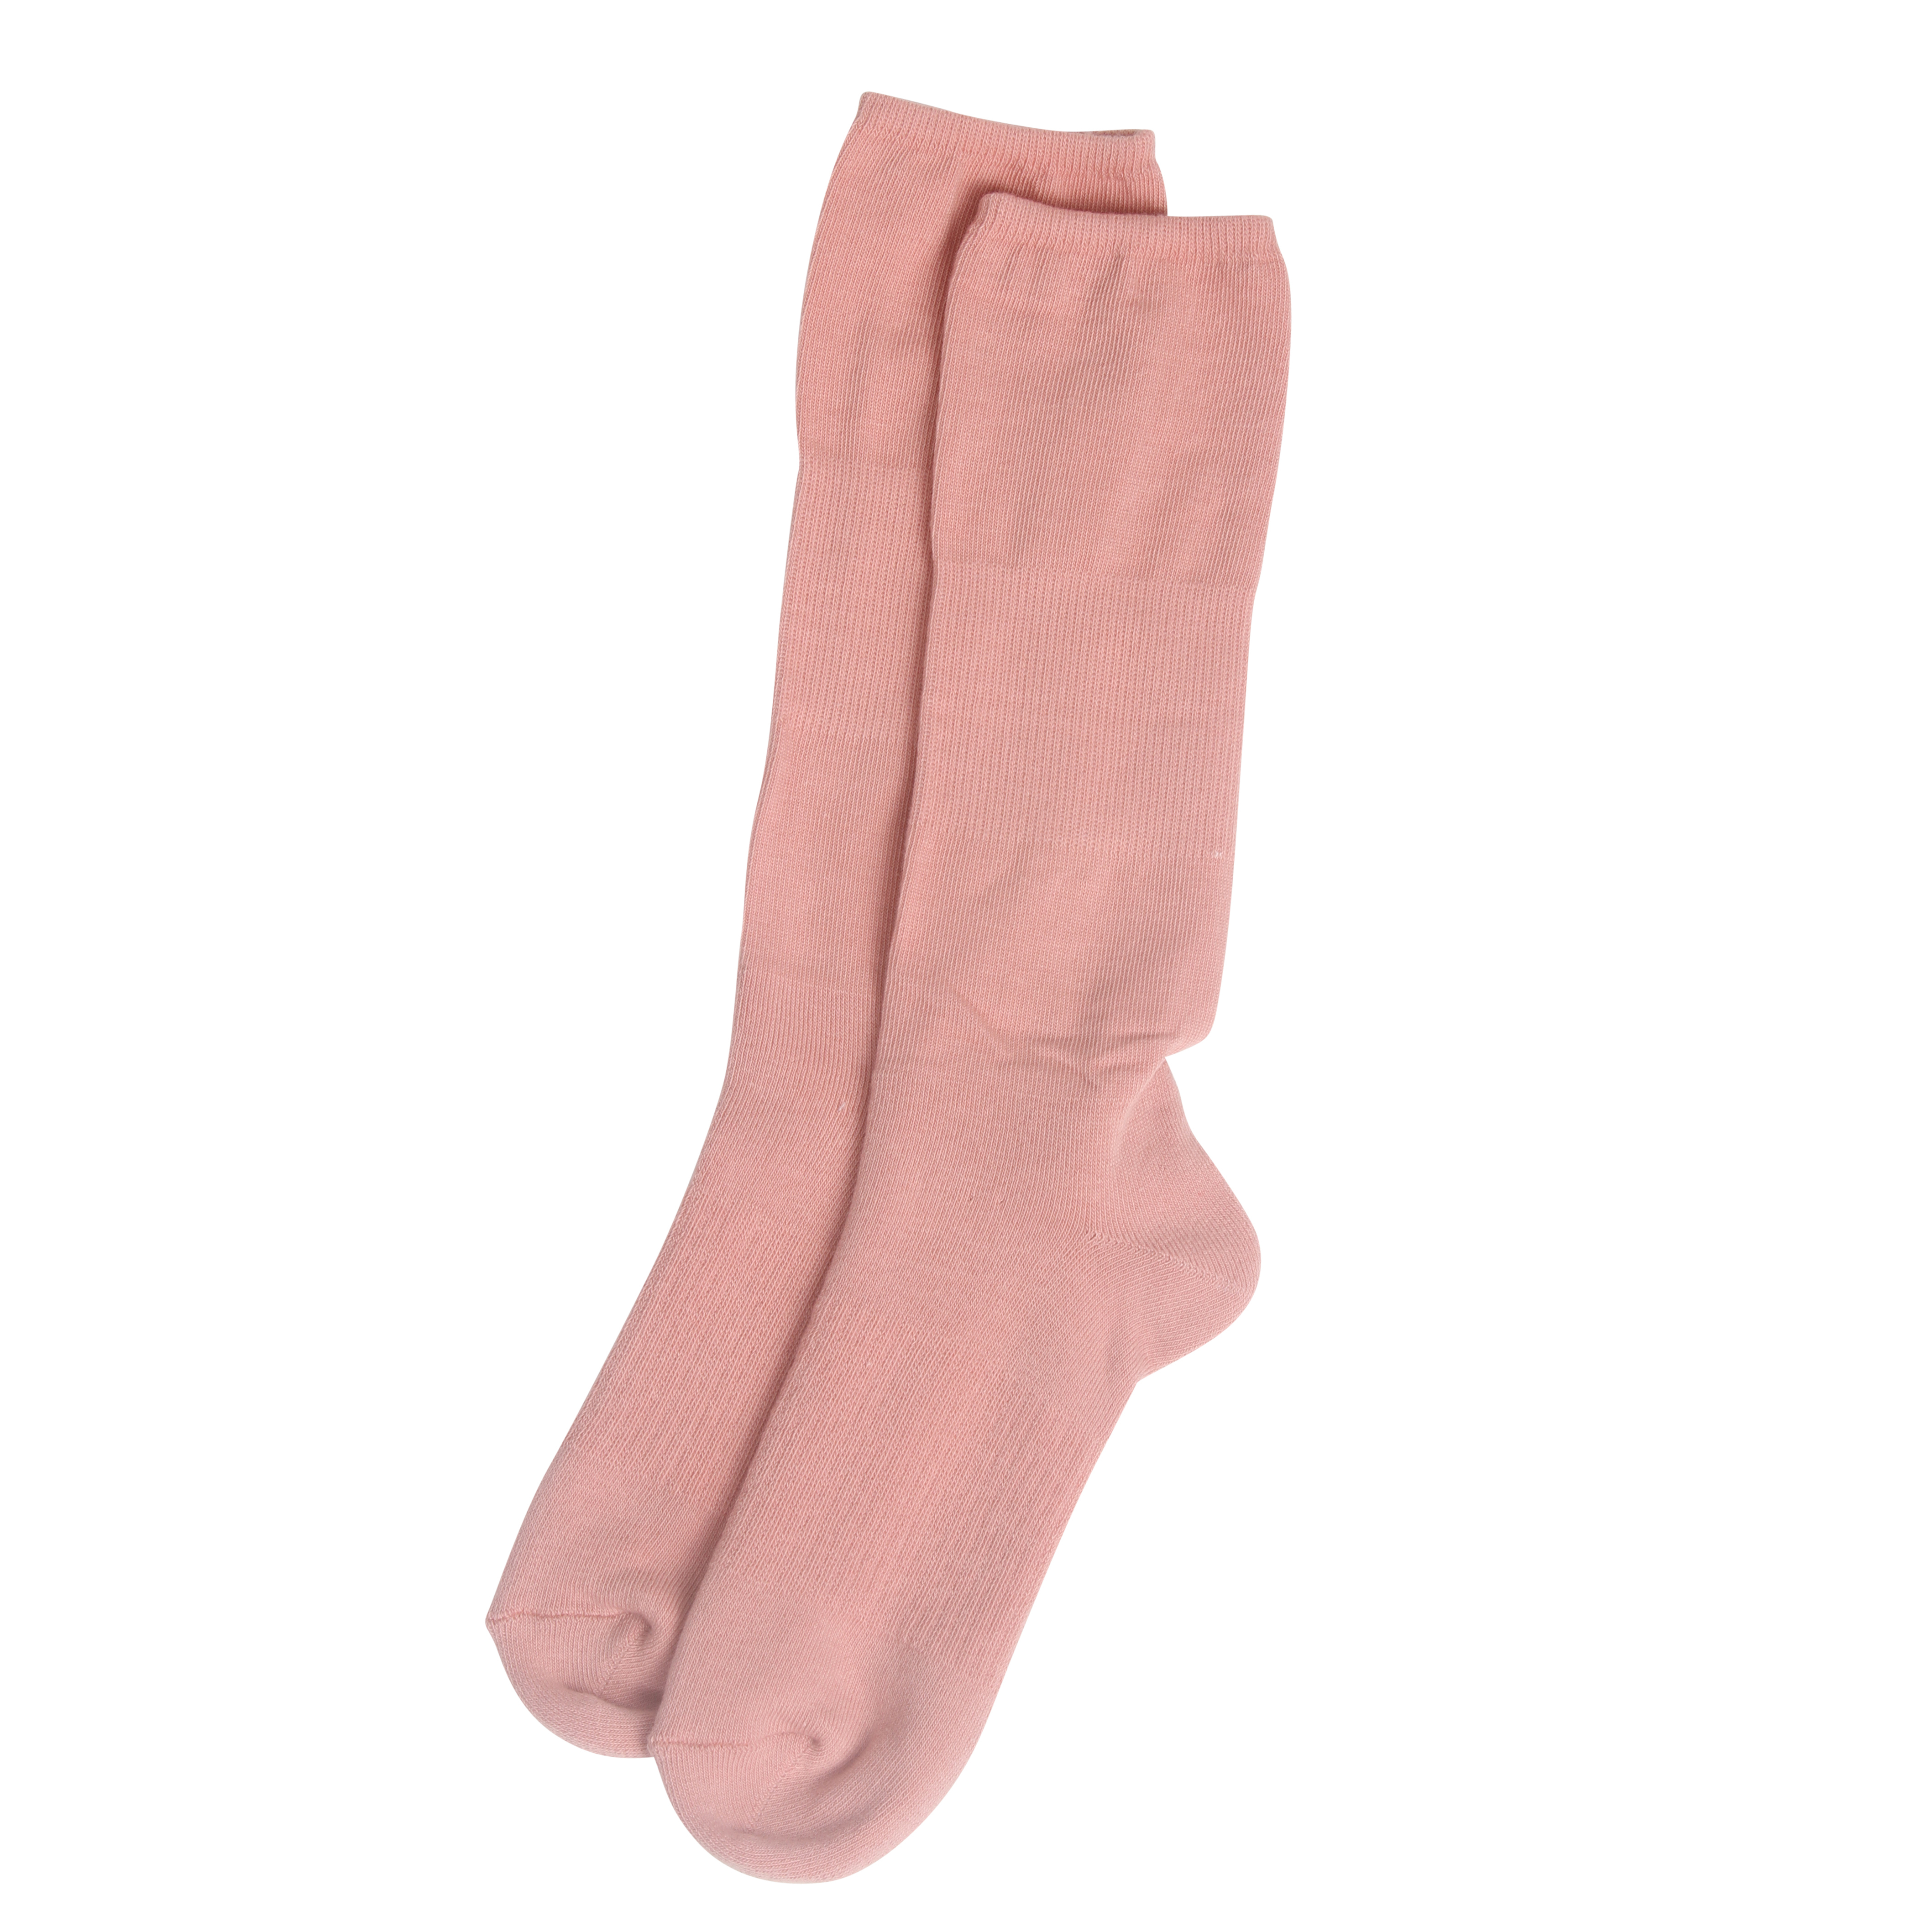 THE BIBIO PROJECT KNEE SOCKS(BUBBLEGUM)